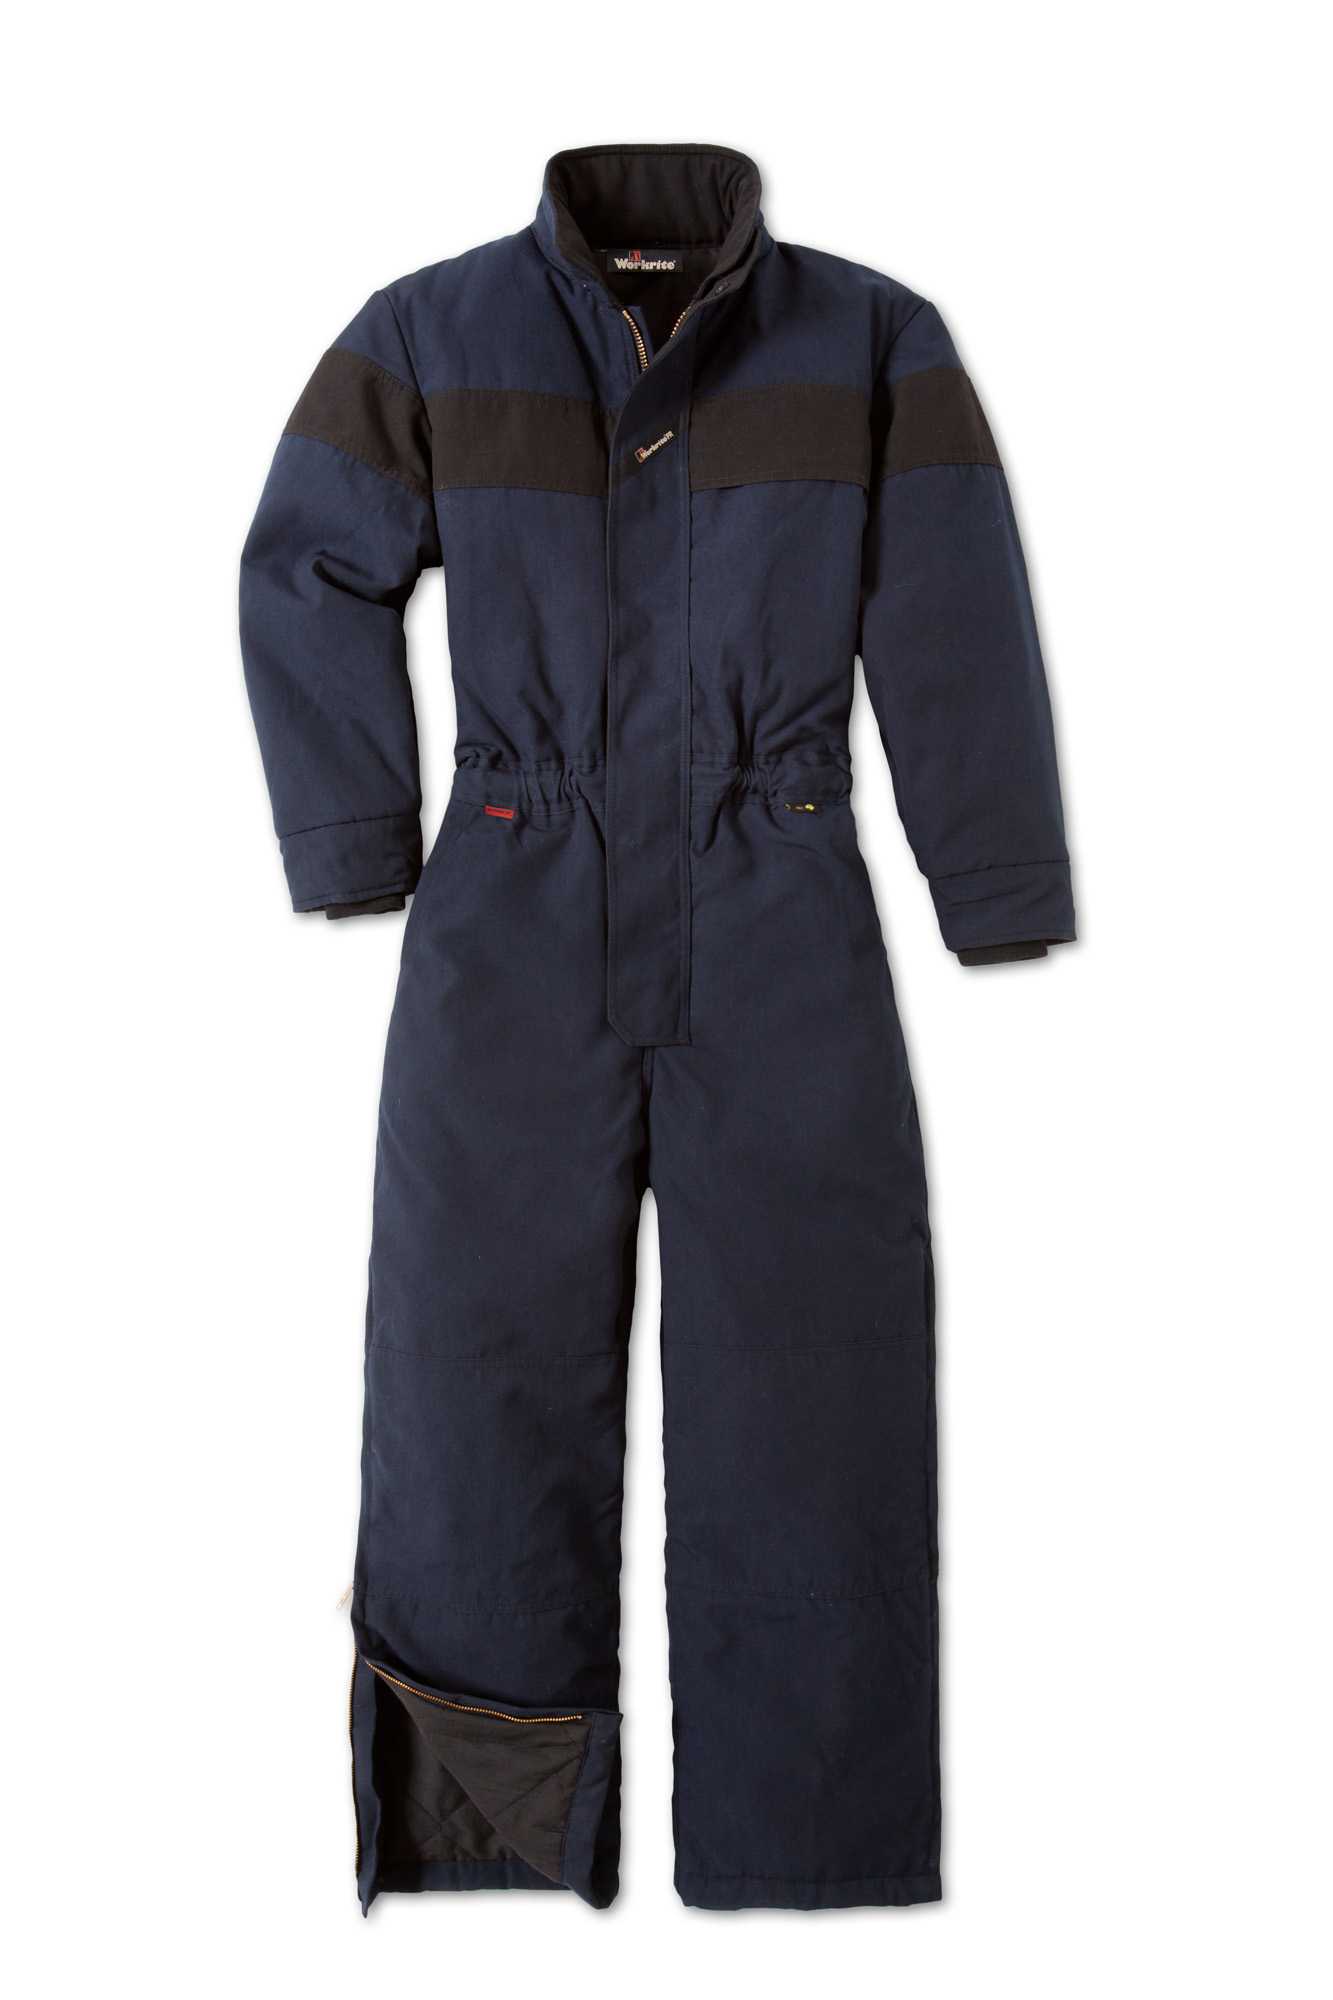 e3473543eb88 Workrite Uniform Co. - Workrite 6 oz Nomex IIIA Insulated Coverall ...